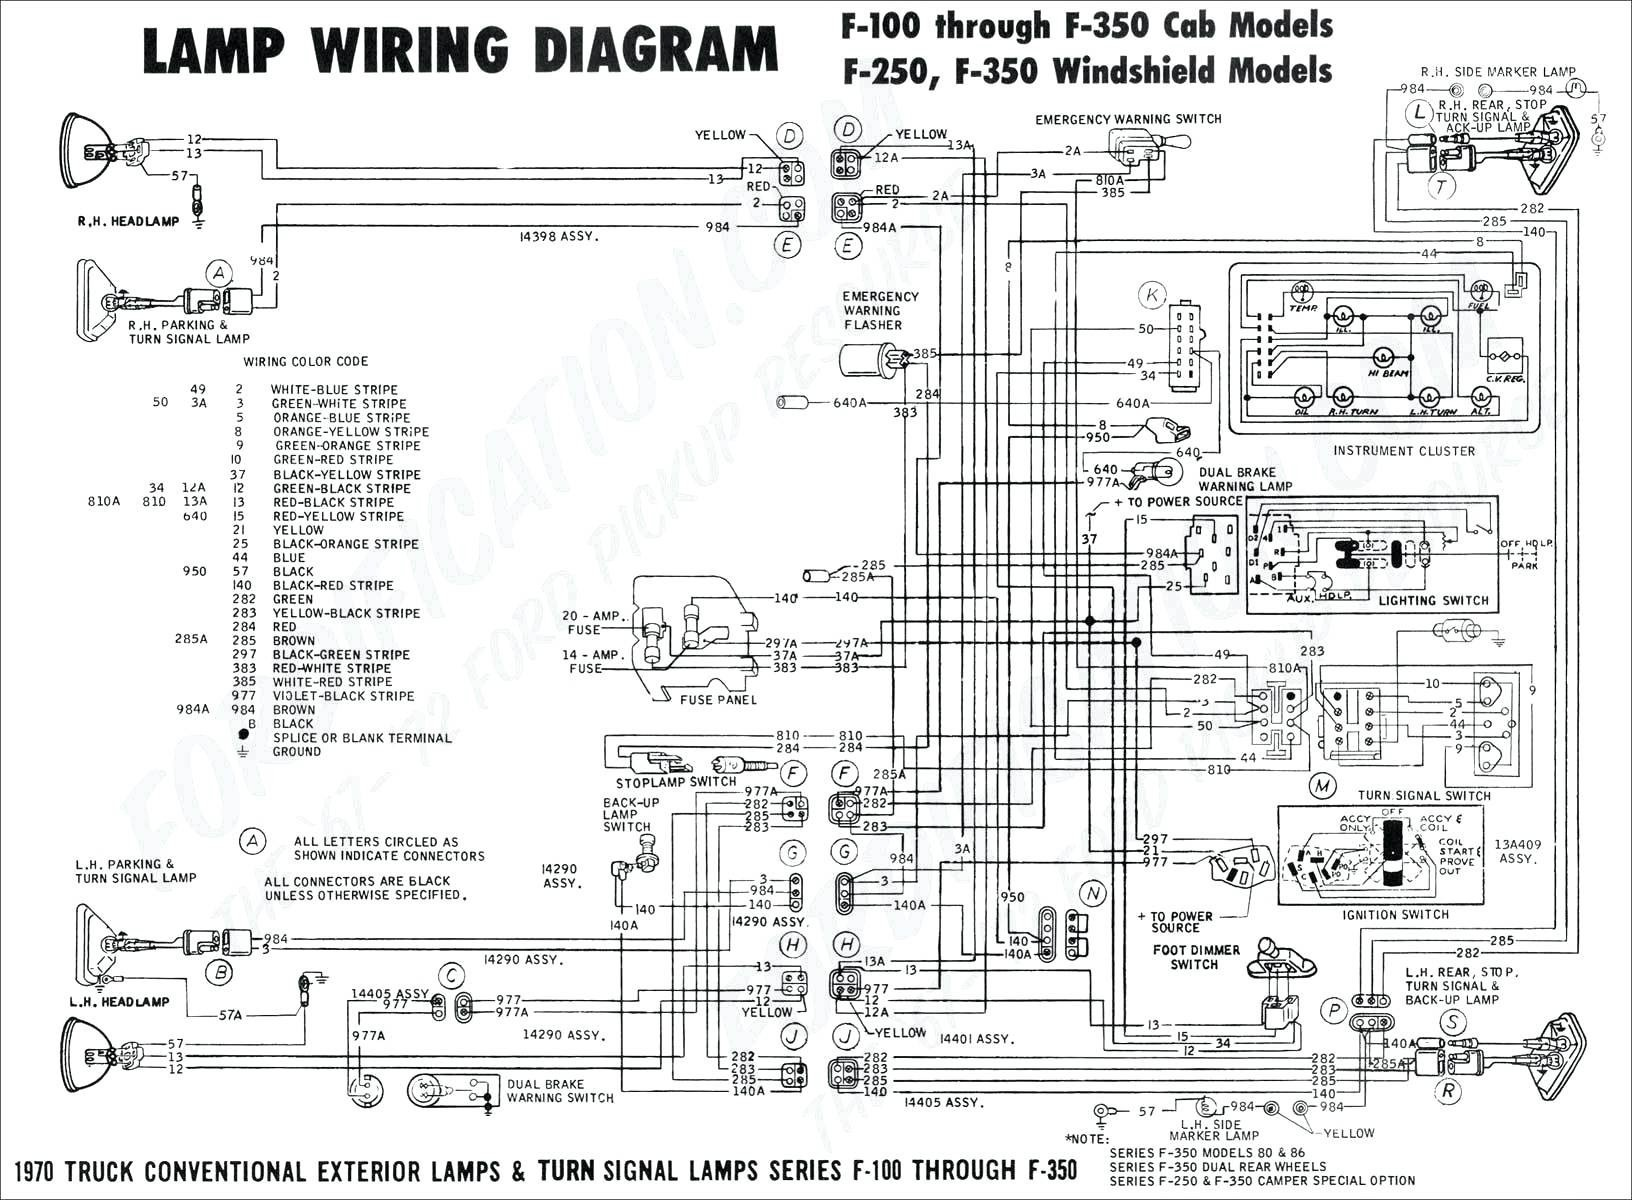 2005 Nissan Xterra Engine Diagram Karr Wiring Diagram Versa Daily Update Wiring Diagram Of 2005 Nissan Xterra Engine Diagram 1998 Nissan Frontier Wiring Diagram